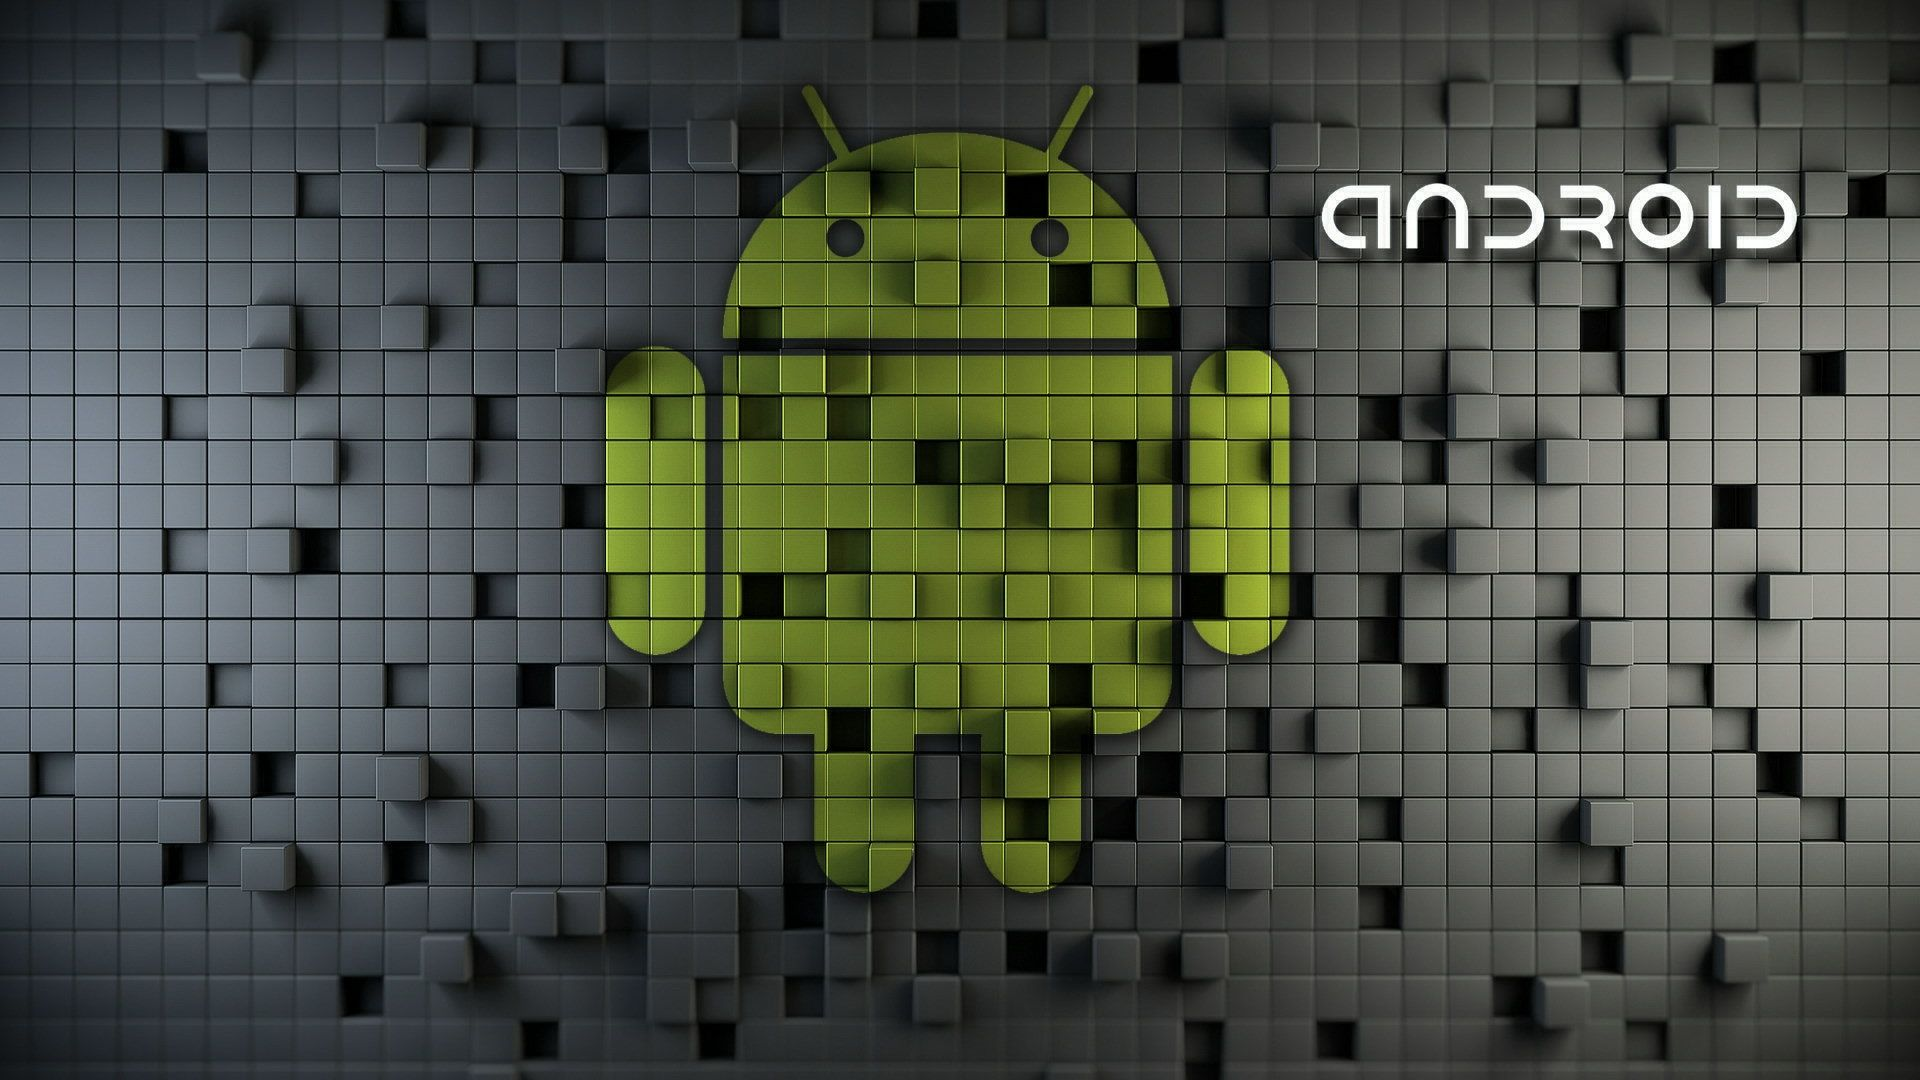 Hd Android Robot Design Desktop Wallpapers Android Hd